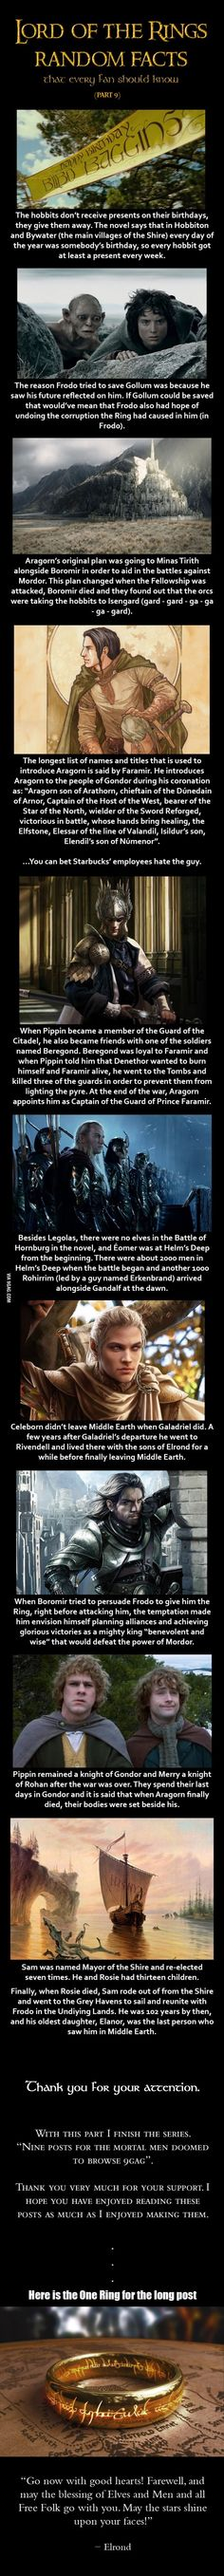 Love LotR facts